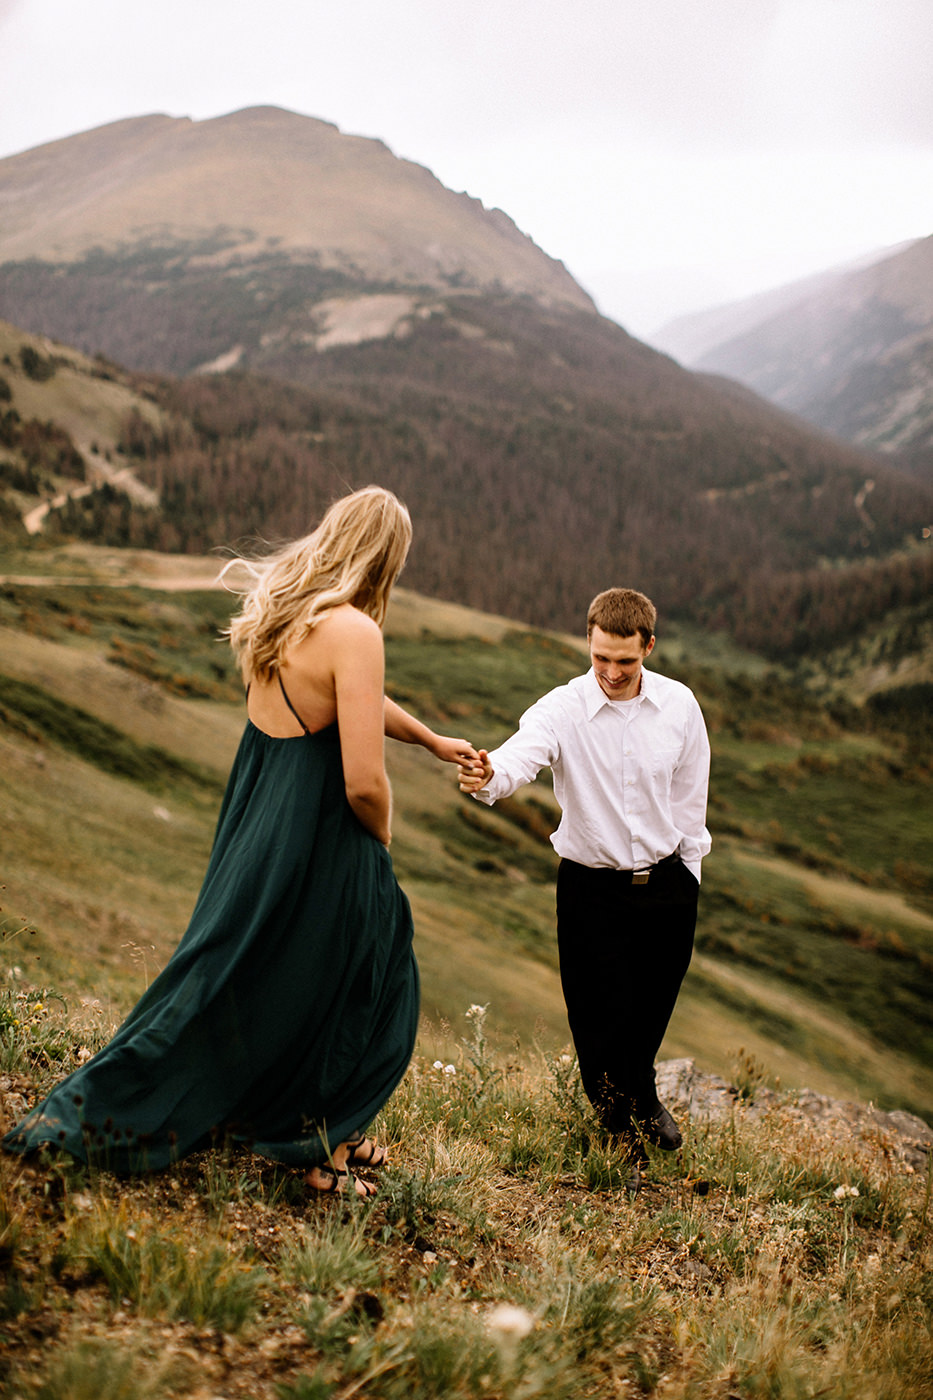 Liz Osban Photography Cheyenne Wyoming Ft Collins Colorado Estes Park Rocky Mountain National Park Photographer Grand Teton Jacksonhole Iceland Destination Elopement Adventure Wedding Elope33.jpg